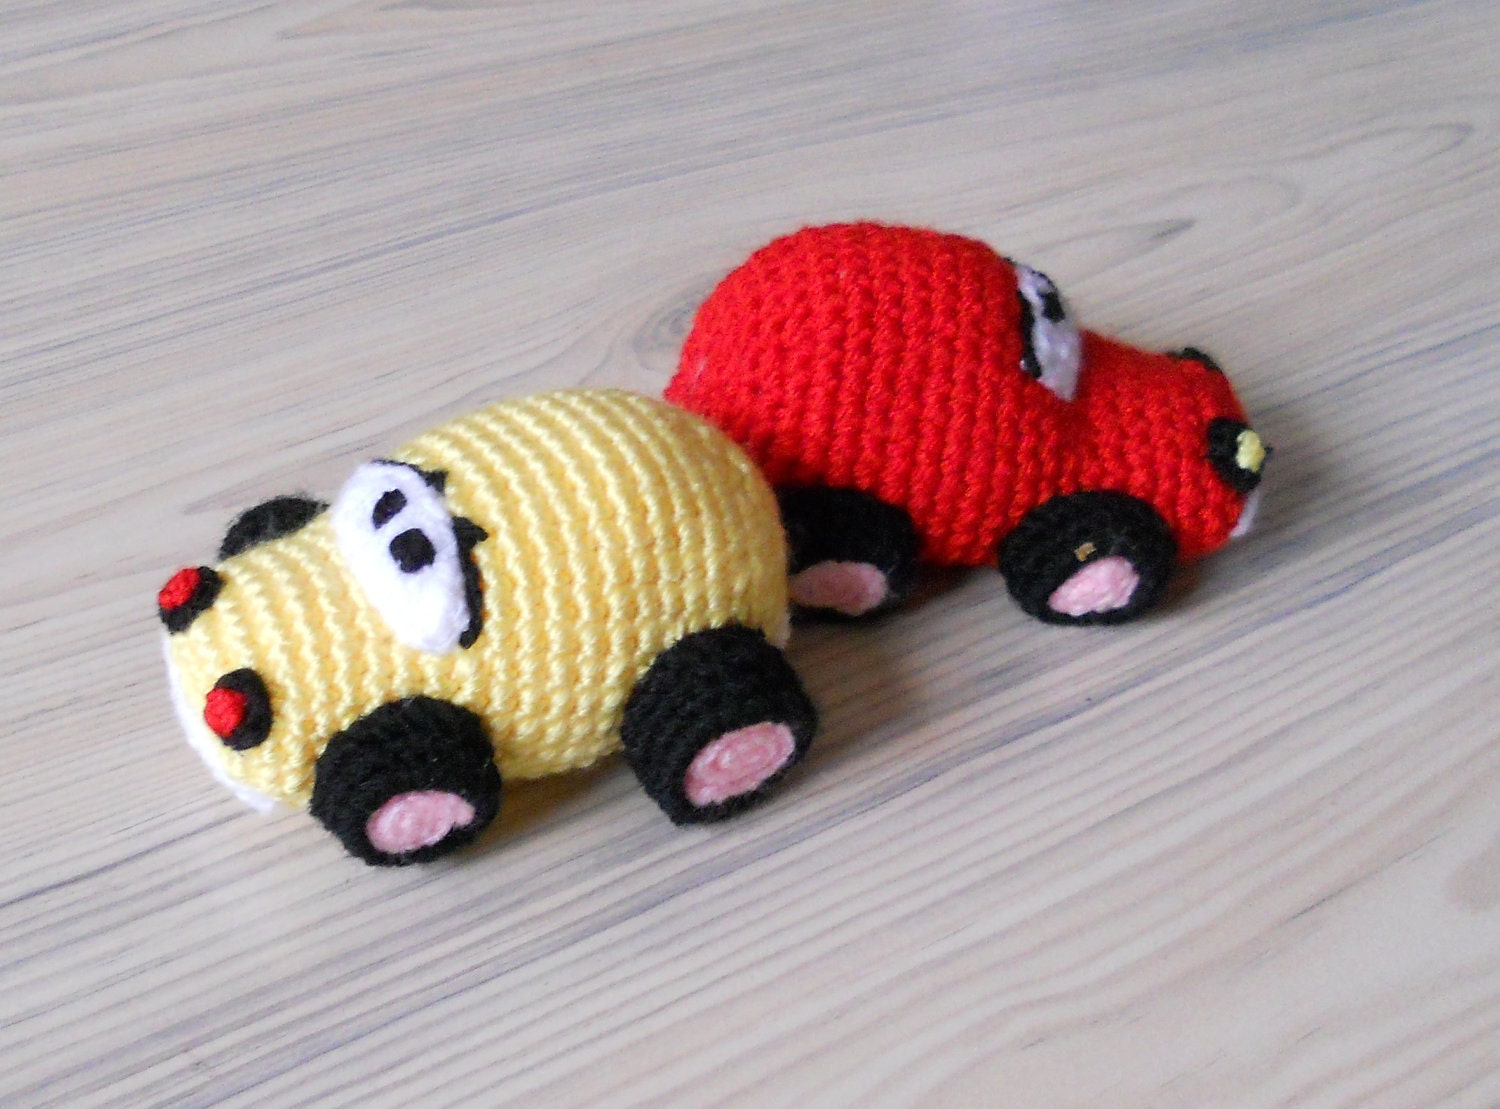 Crochet Toys For Boys : Crochet car baby toys red yellow by